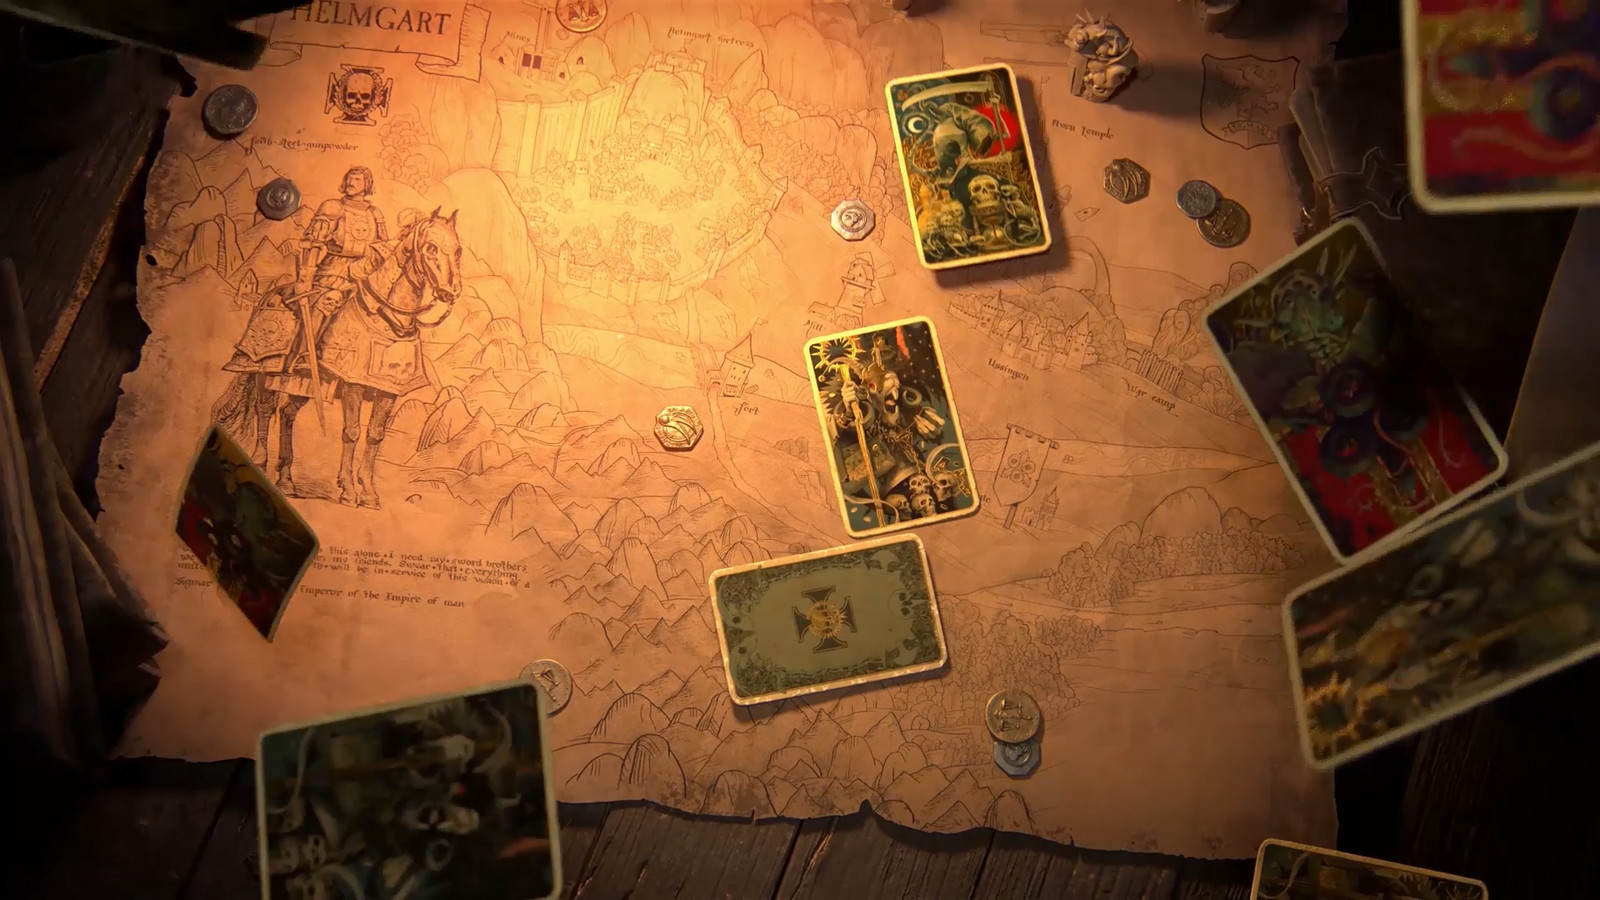 The cut-scene ends with the shot of Helmgart invaded by the enemy - represented by tarot cards.